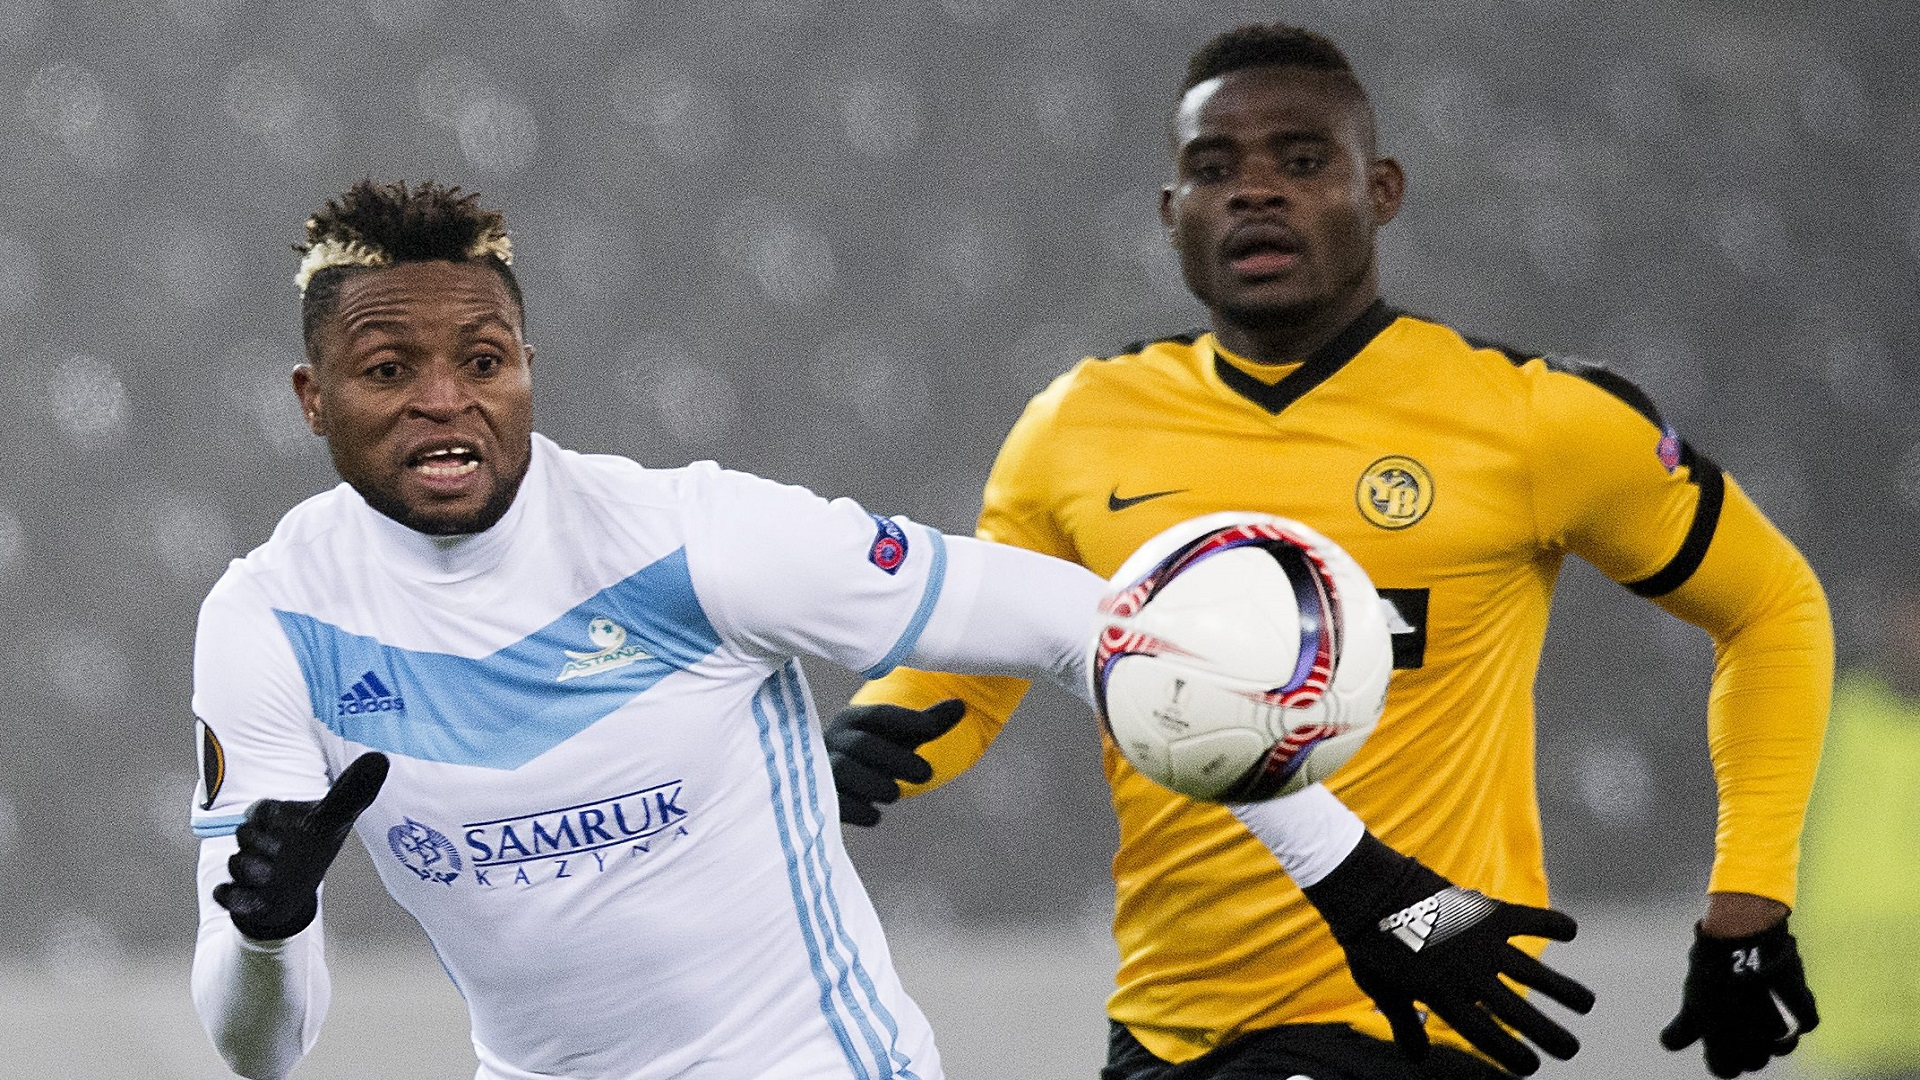 Champions League: Kasim Adams scores comical own goal in Young Boys defeat